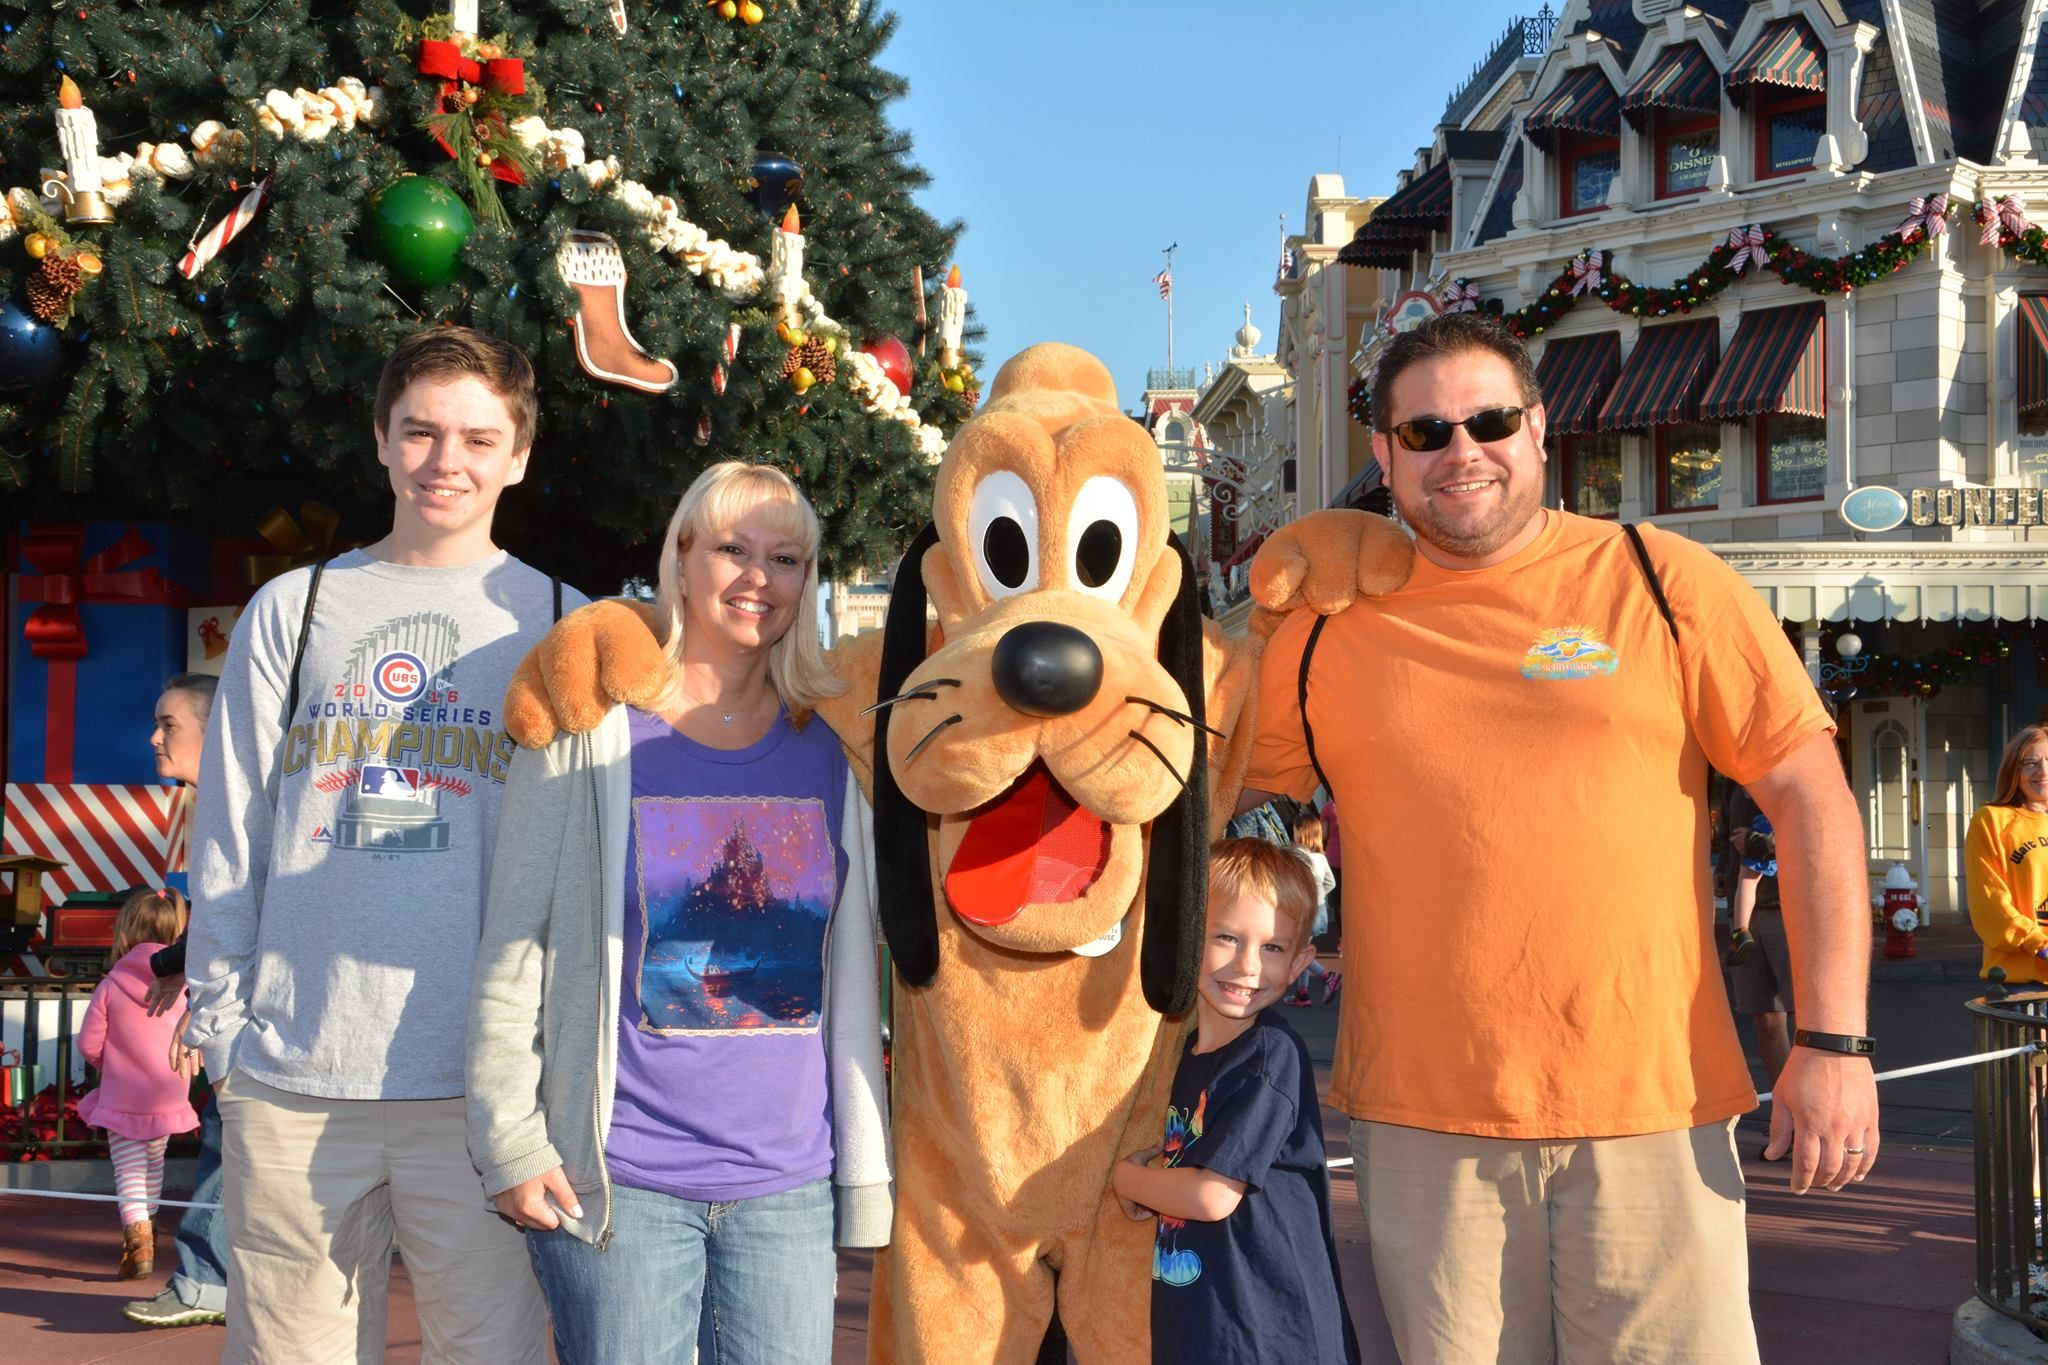 Meet Disney characters at Disneyland and Disney World